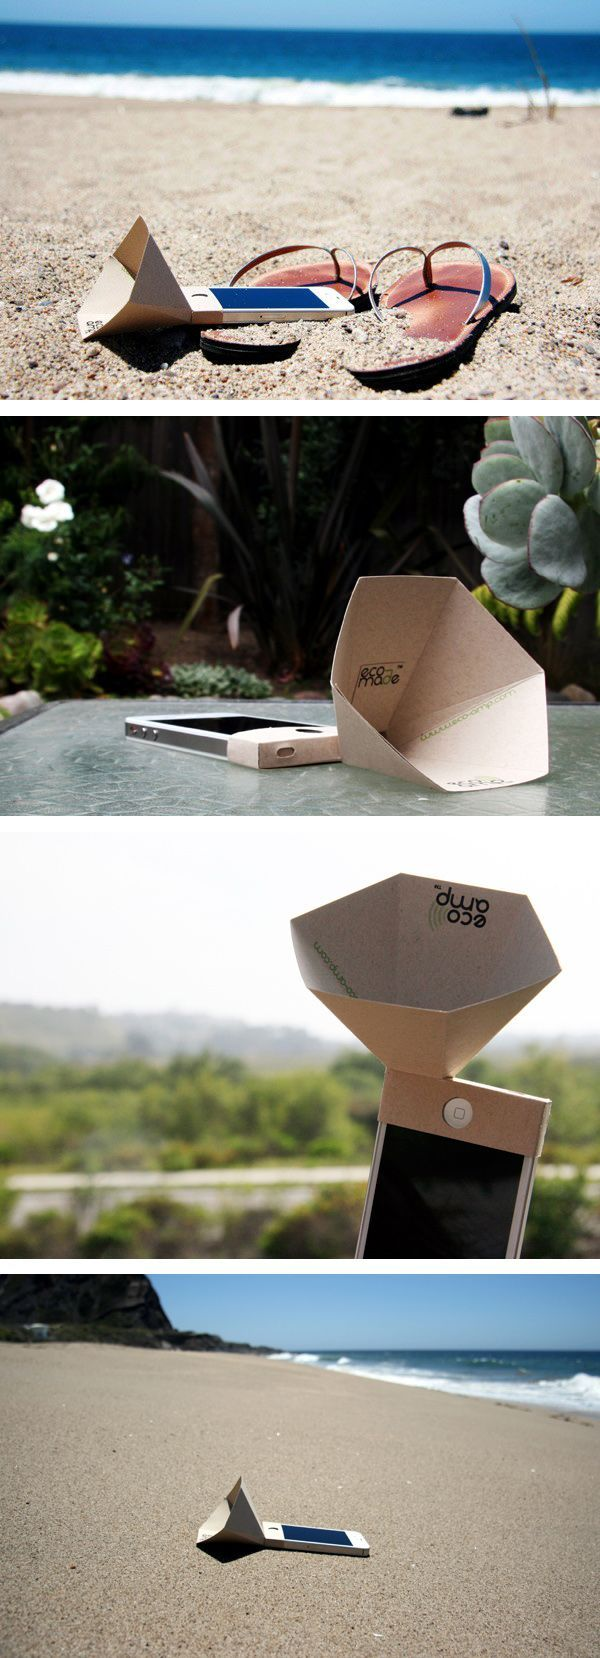 Eco-amp. Ecological and recyclable amplifier for iphone speakers by the American brand Eco-made.